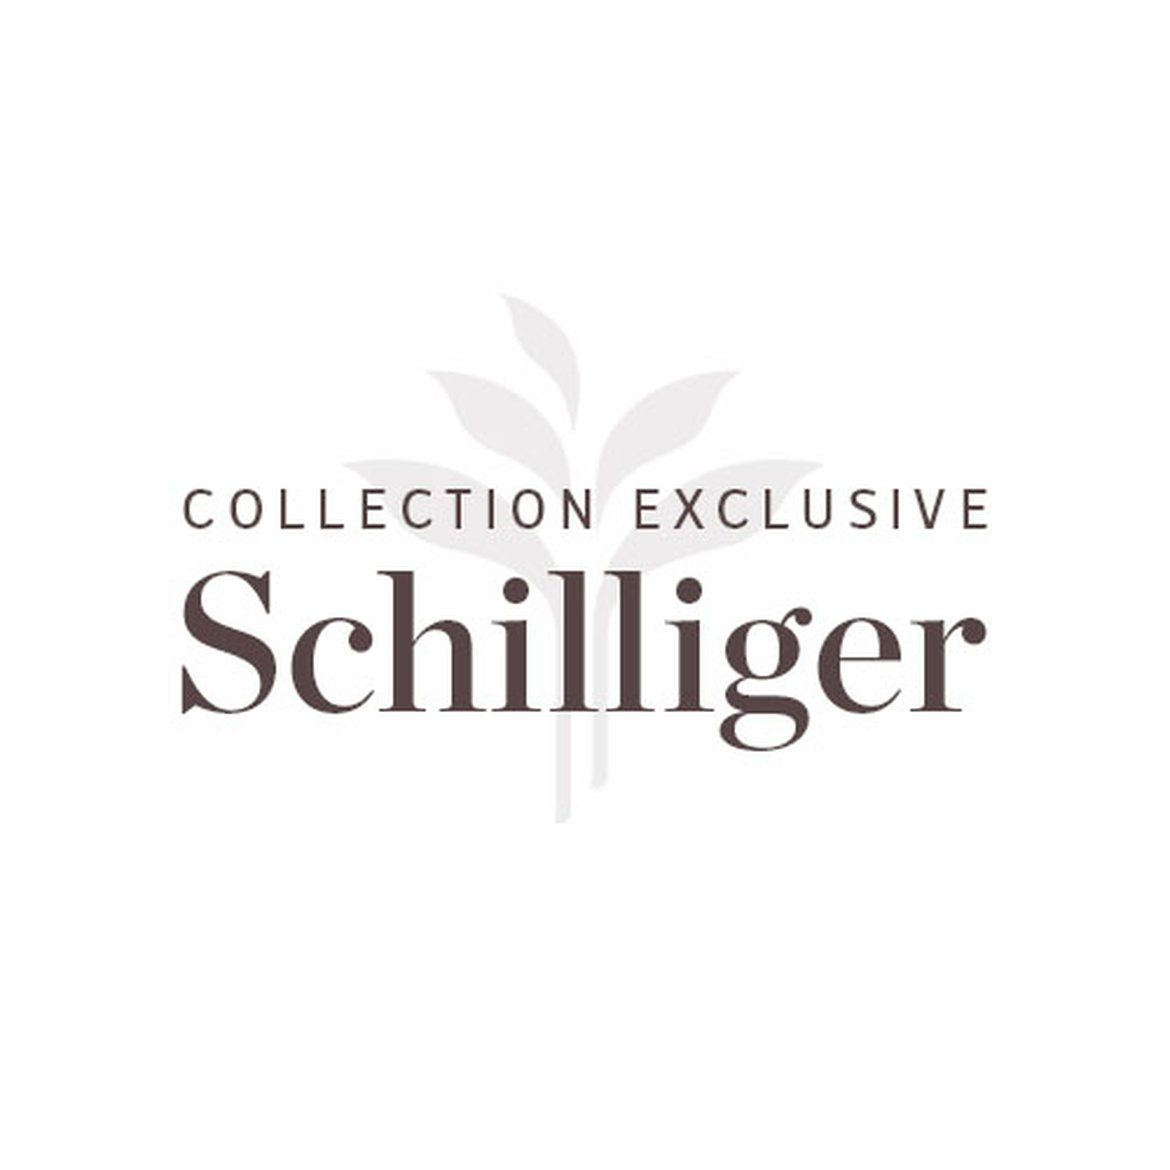 Collection Exclusive Schilliger